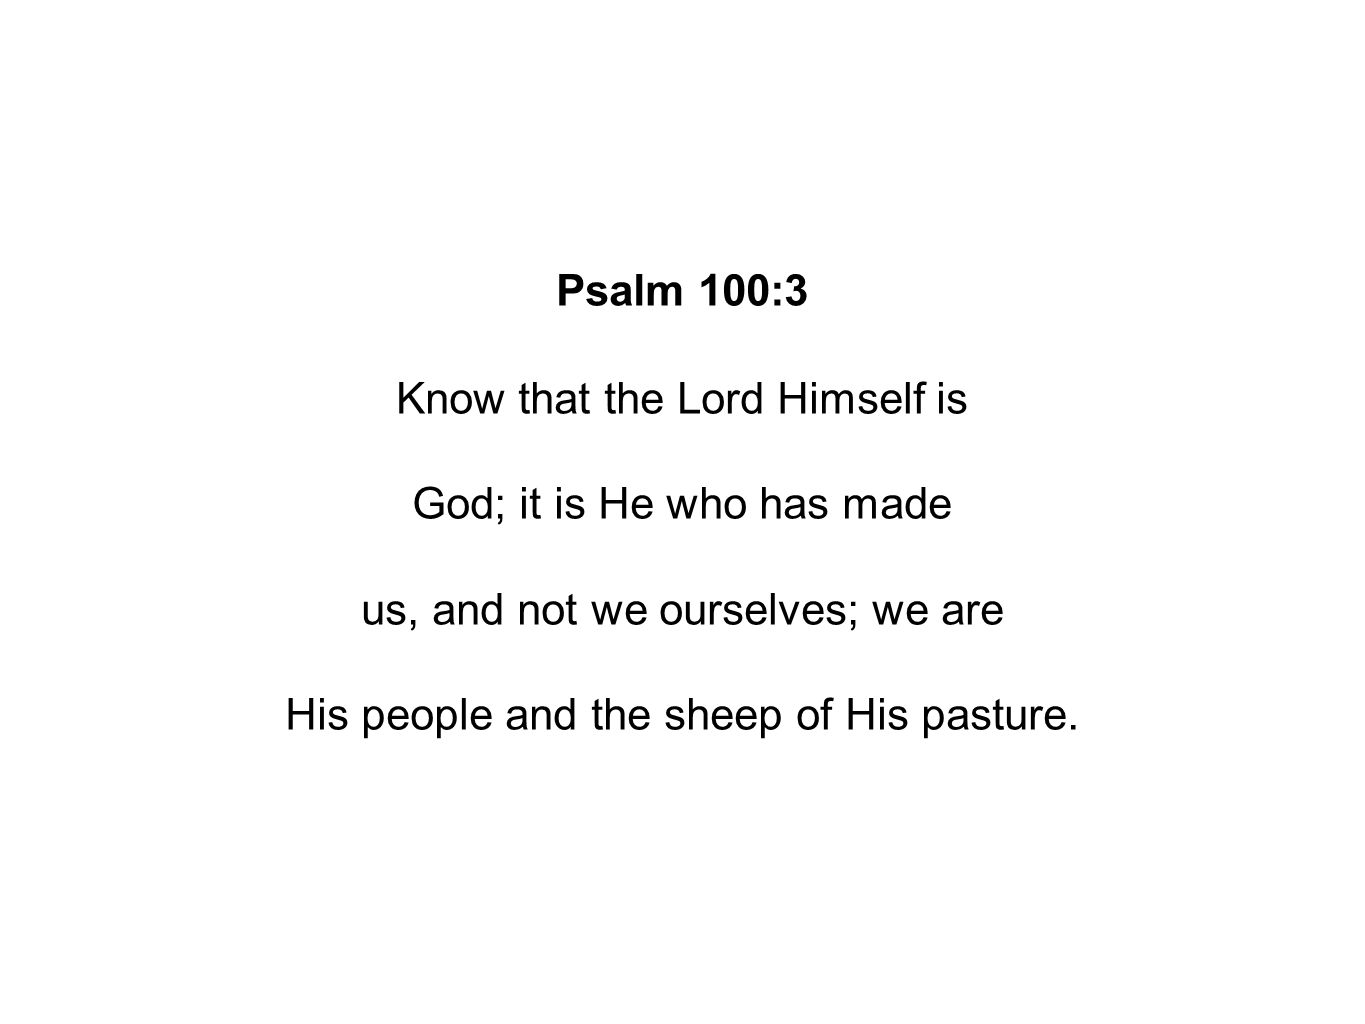 Psalm 100:3 Know that the Lord Himself is God; it is He who has made us, and not we ourselves; we are His people and the sheep of His pasture.